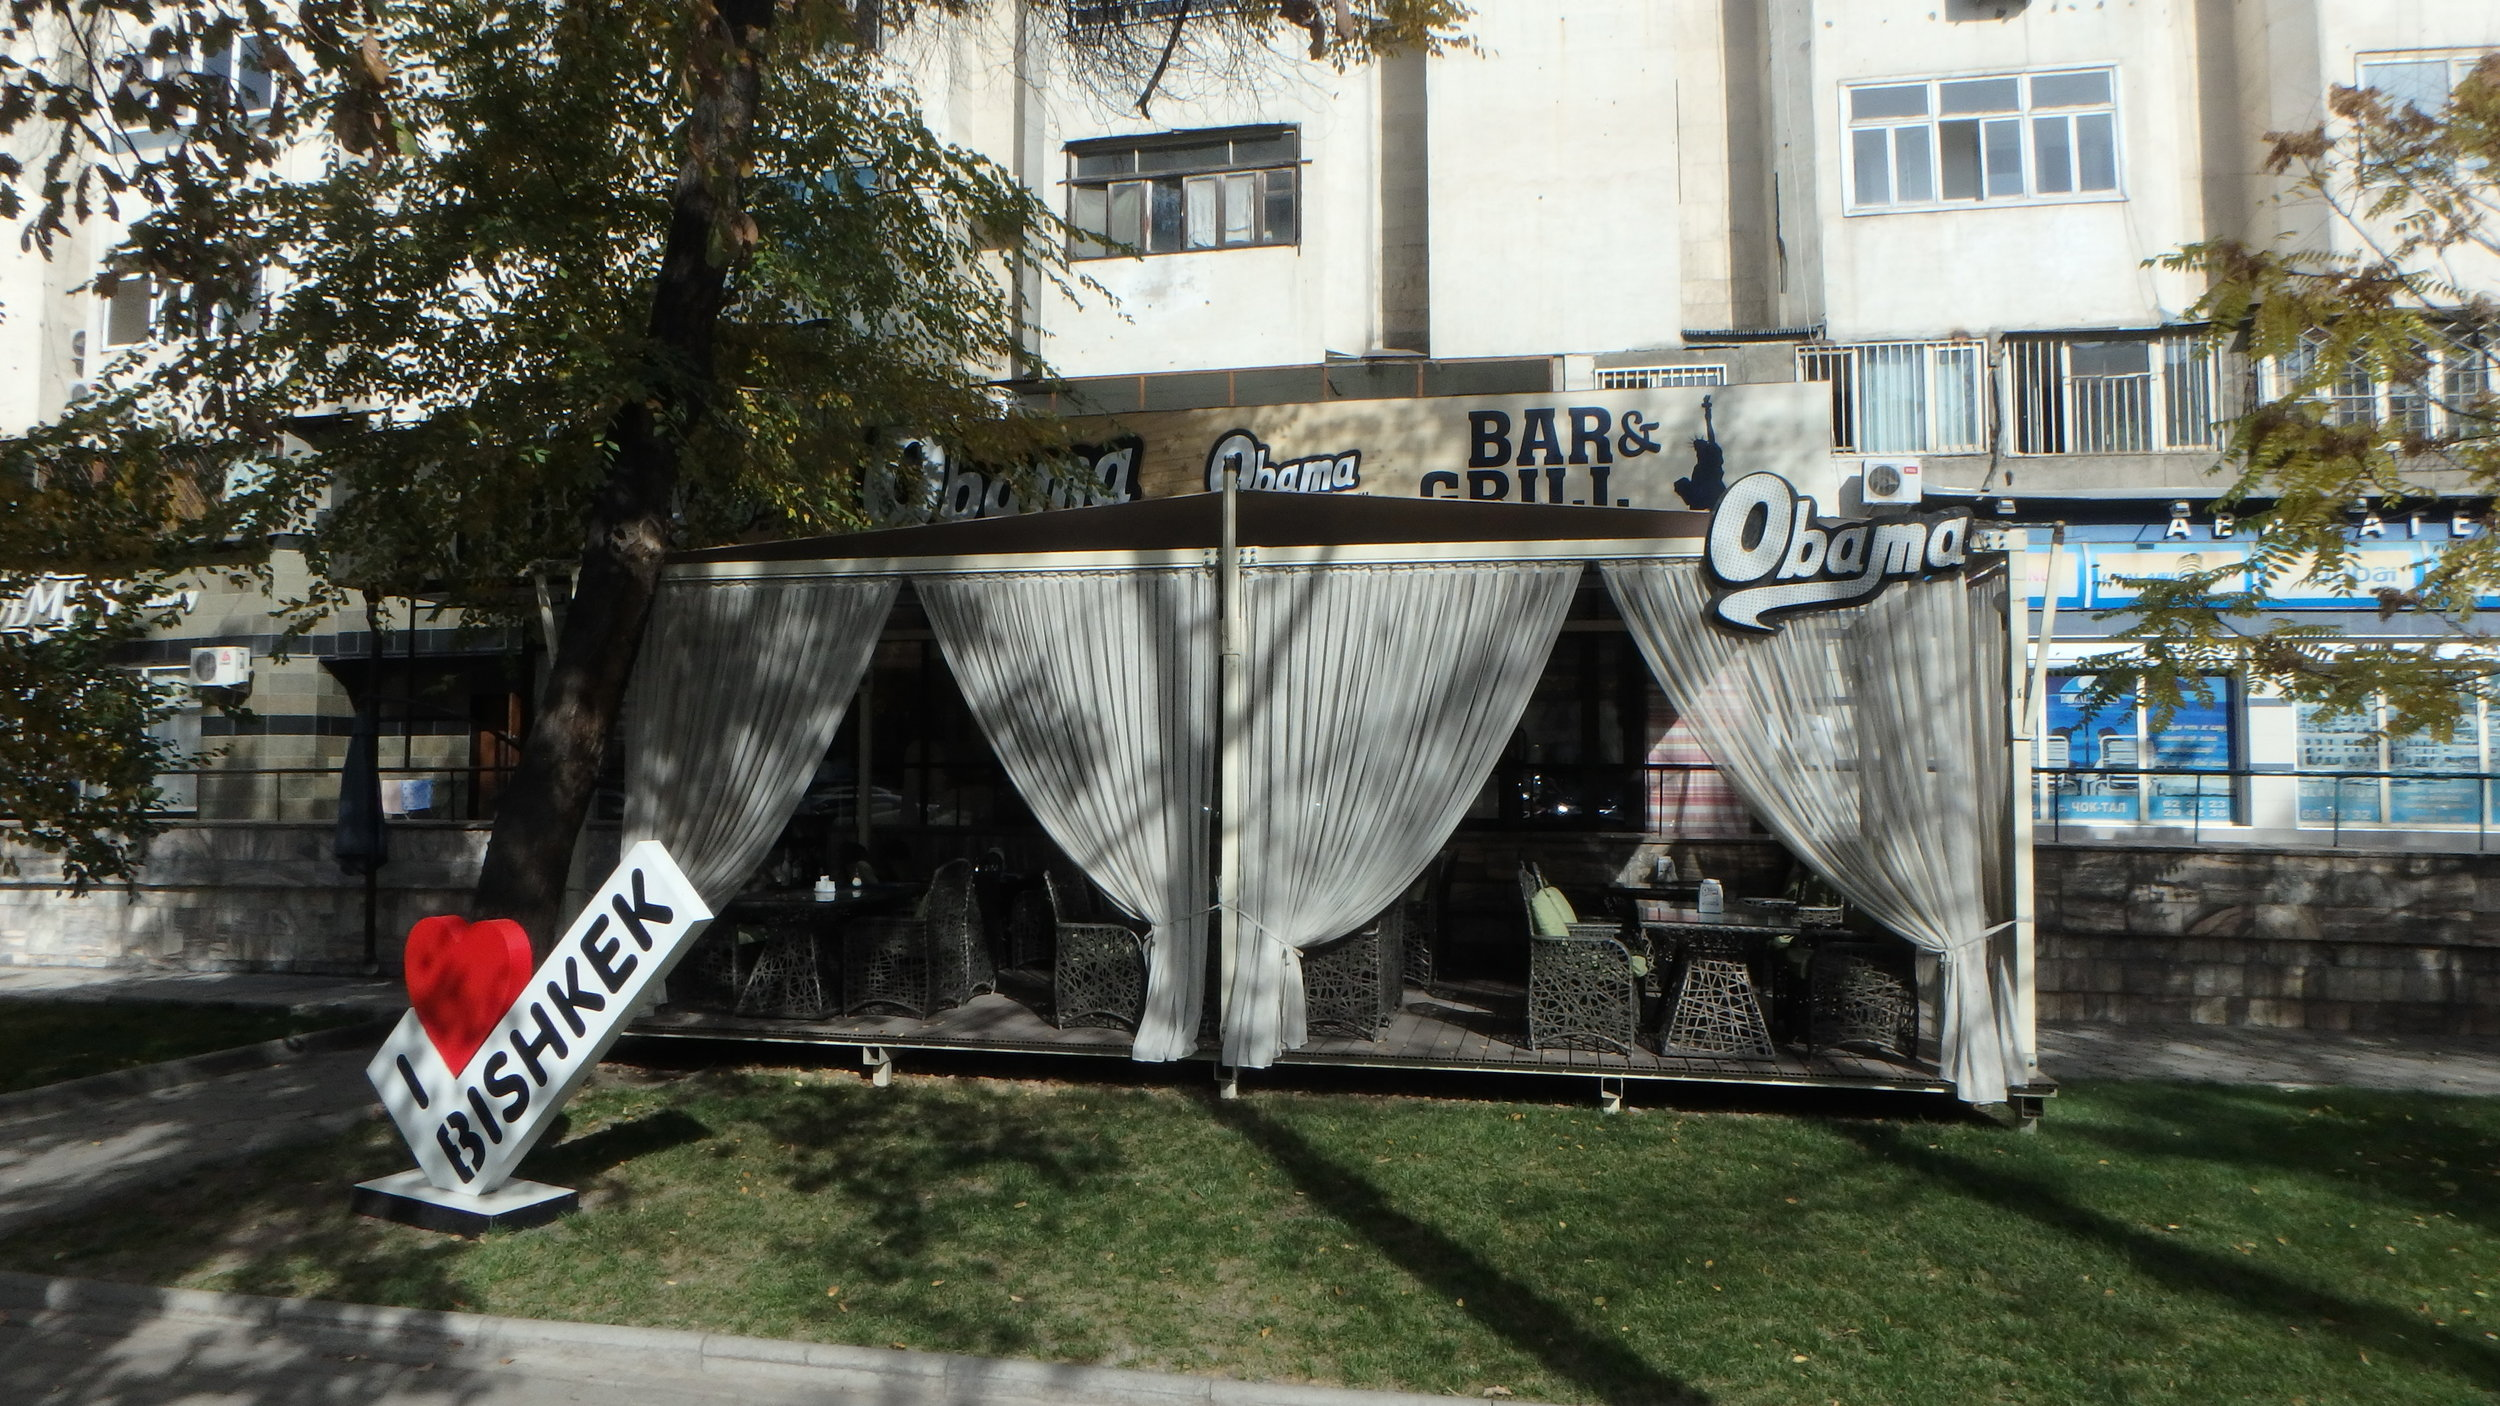 Kyrgyzstan puts in its two cents with regards to American politics via its cuisine...